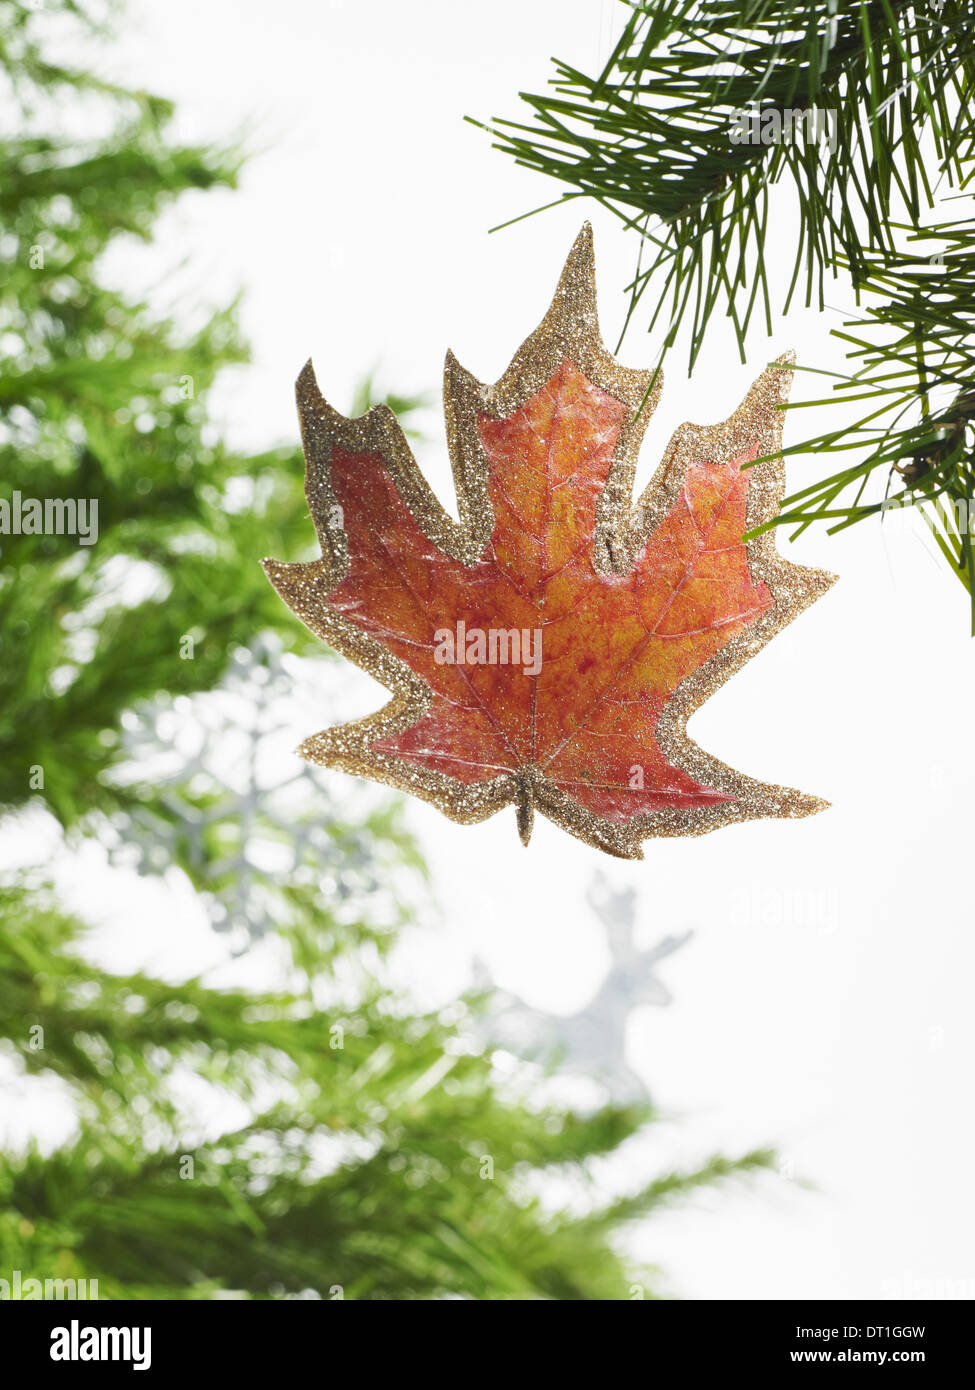 Still life Green leaf foliage and decorations A pine tree branch Christmas decorations A brown ornament a maple leaf shape - Stock Image